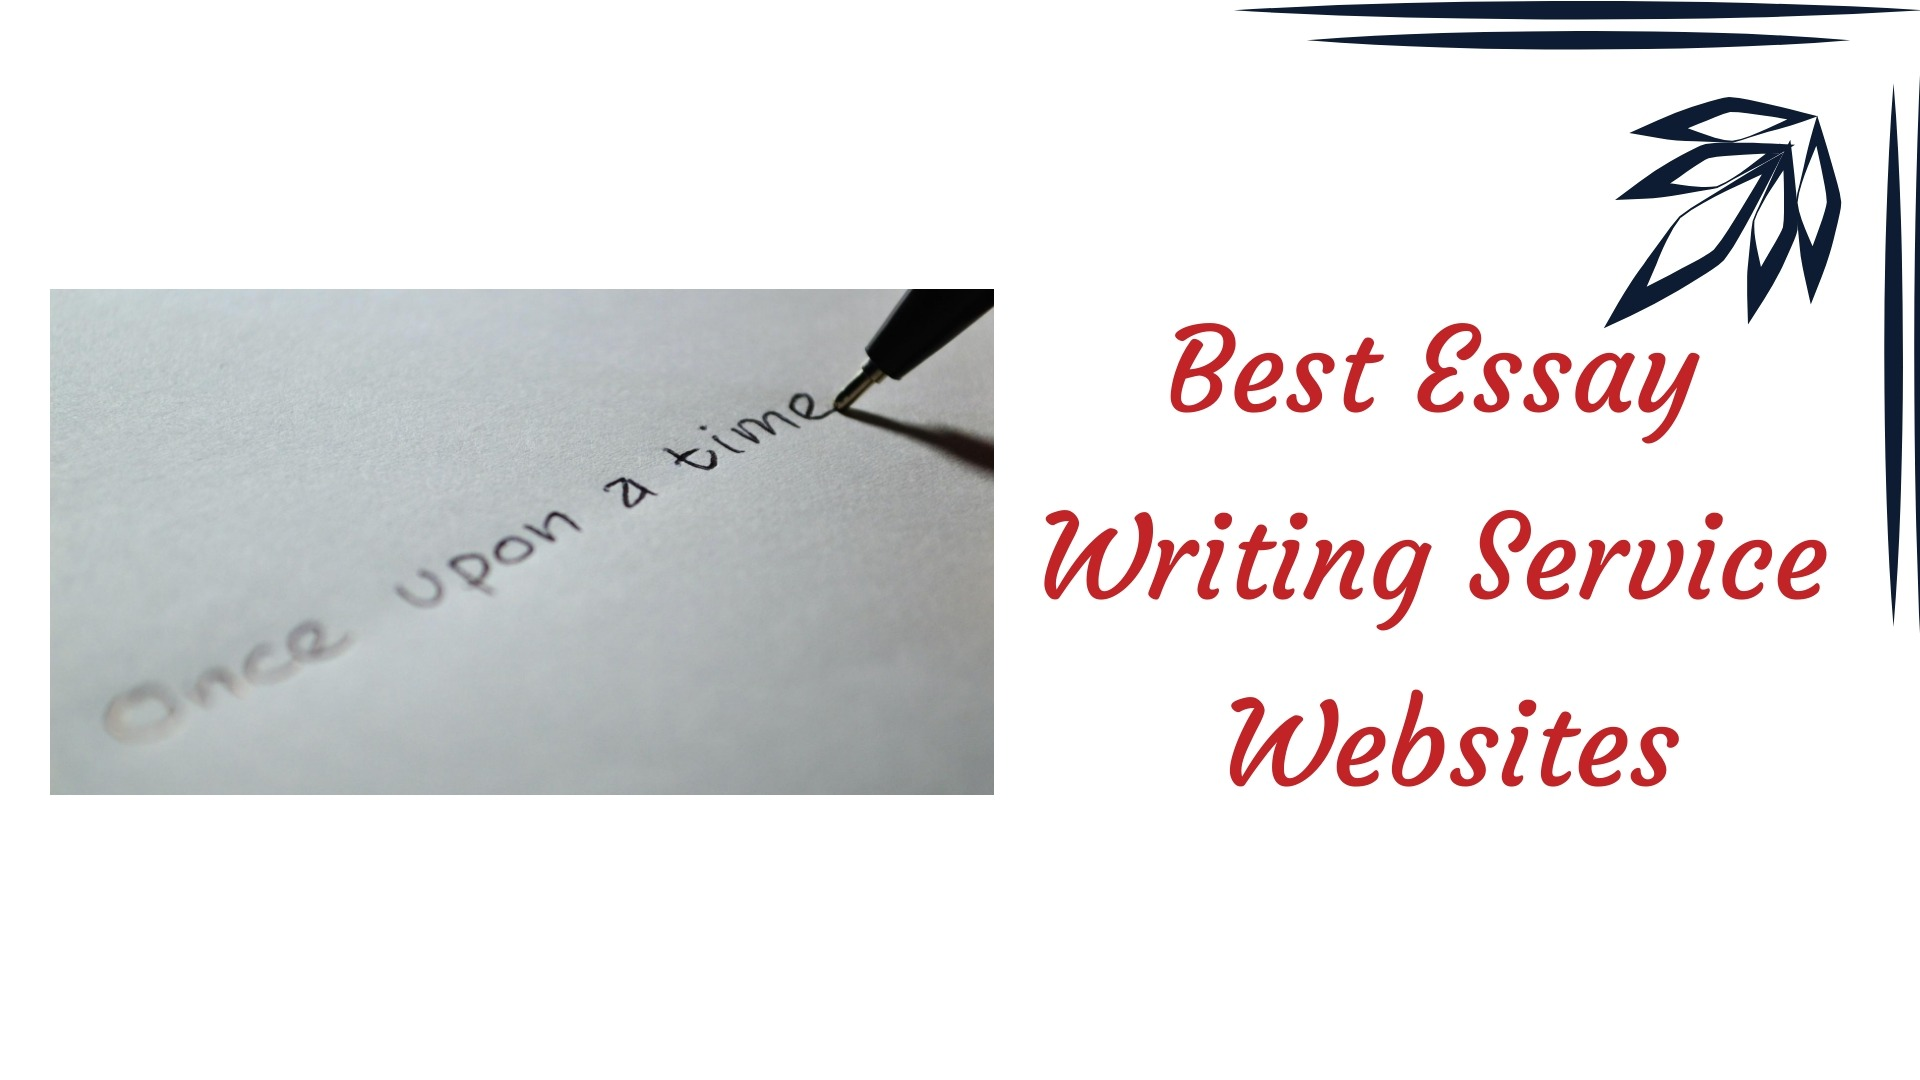 Next Big thing in essay writing service | Best websites